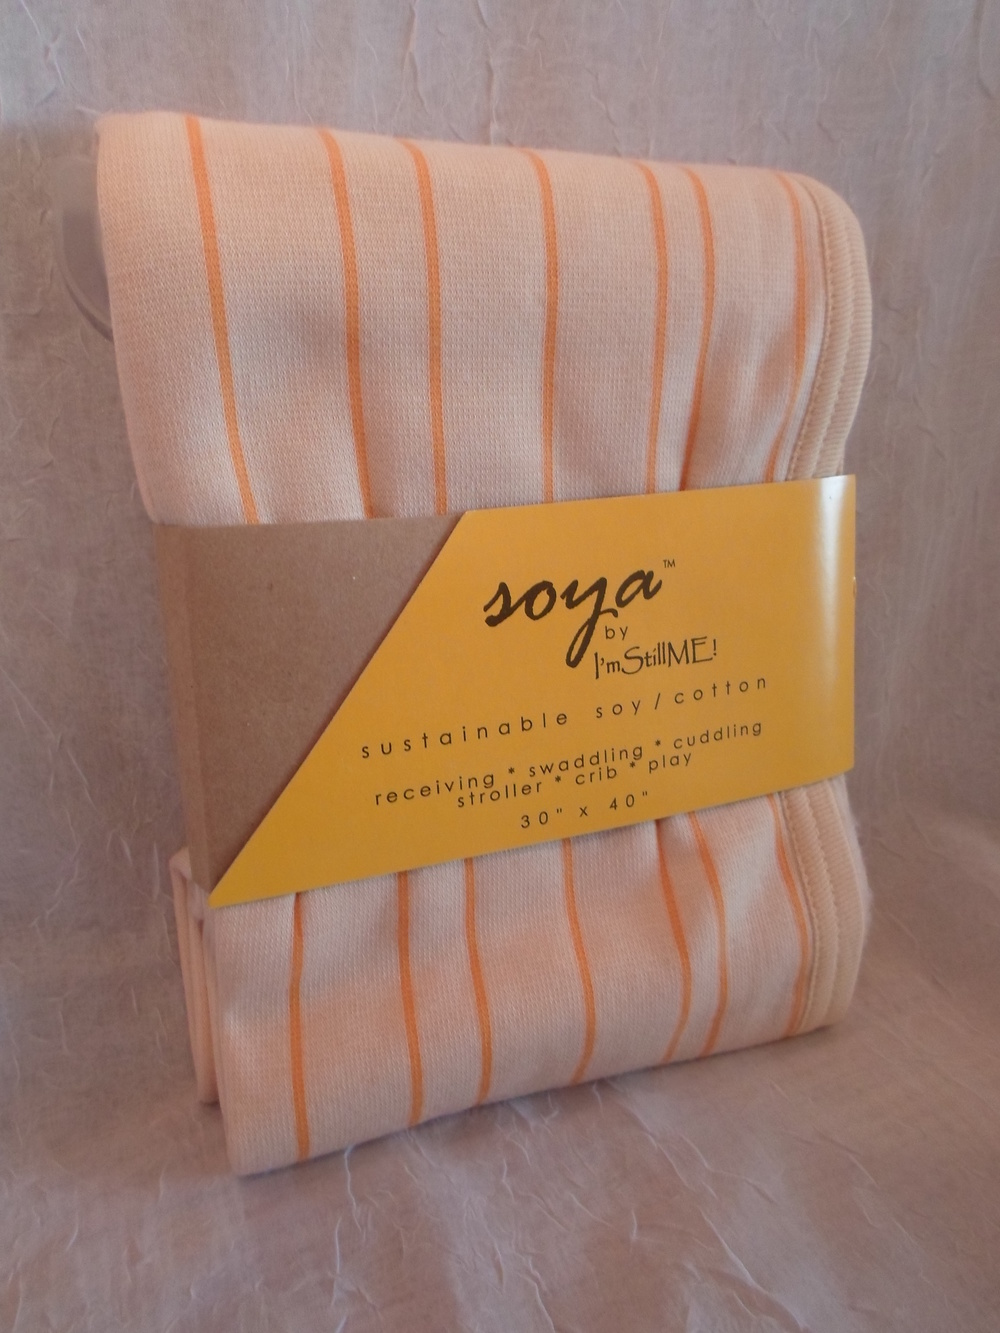 Soya Blanket in orange $29.95 Wants 1 - PURCHASED